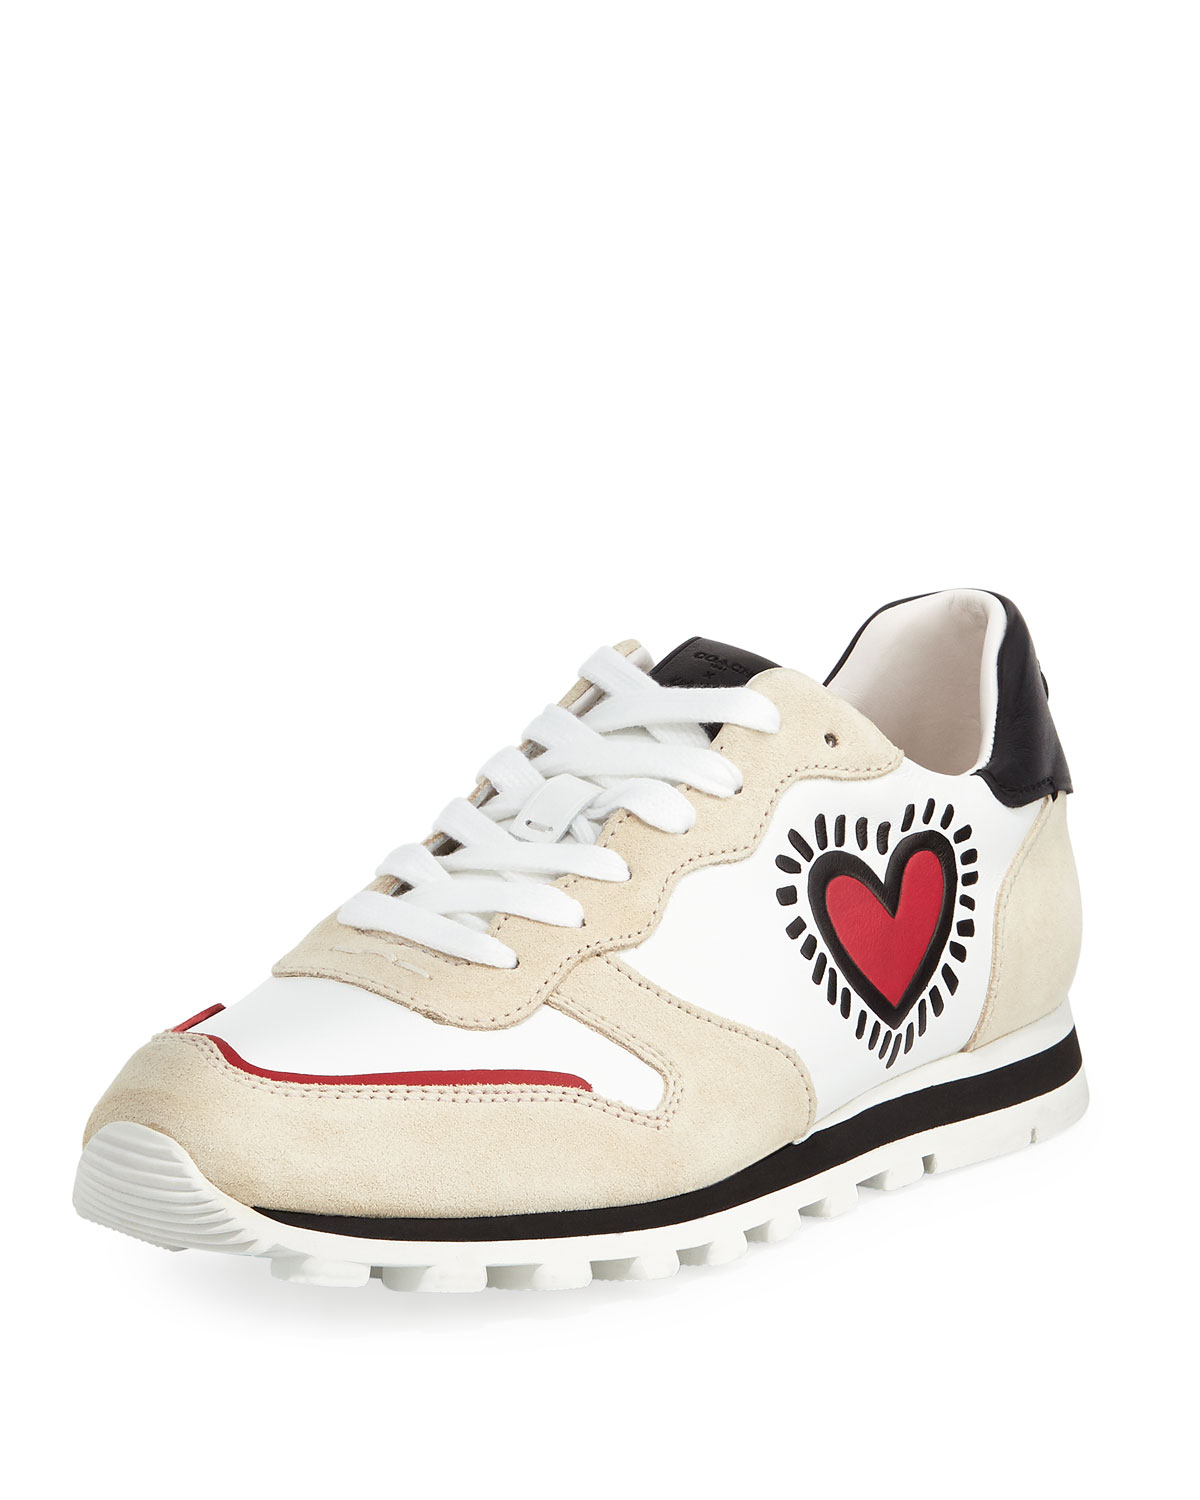 b0804a180d34 Coach x Keith Haring Heart Runner Leather Suede Sneaker